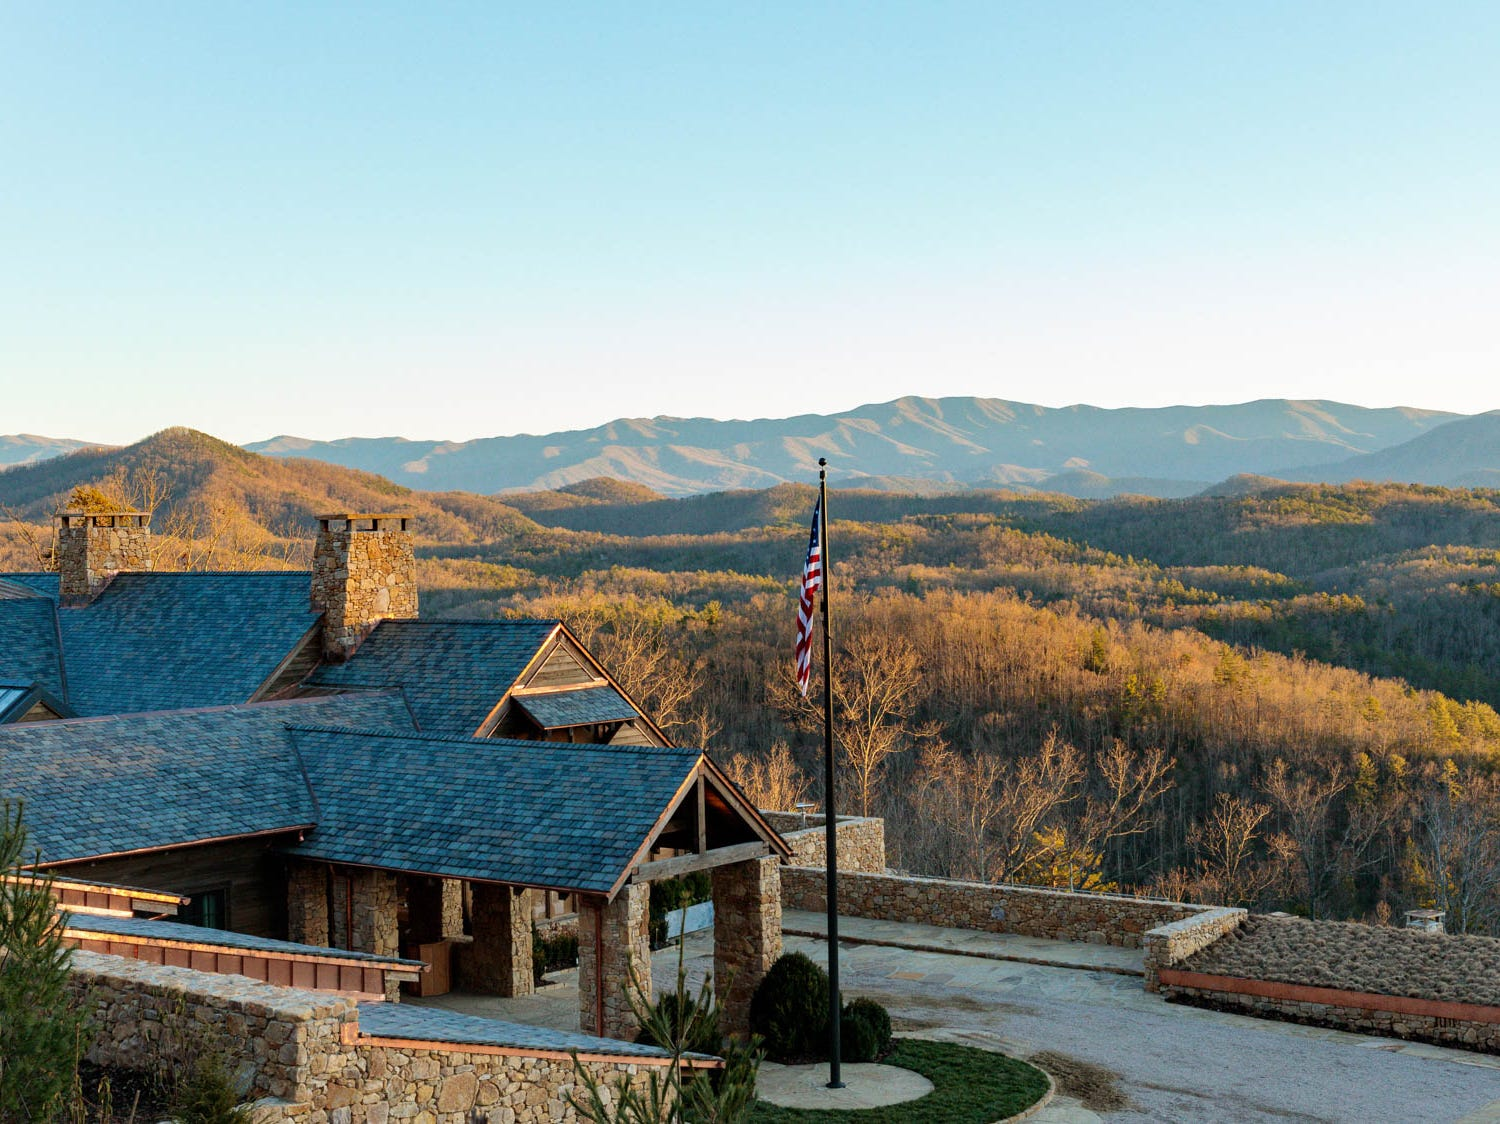 The Lodge at Blackberry Mountain. This 17,000-square-foot facility houses Three Sisters restaurant, bar, spa and indoor and outdoor lounge areas.